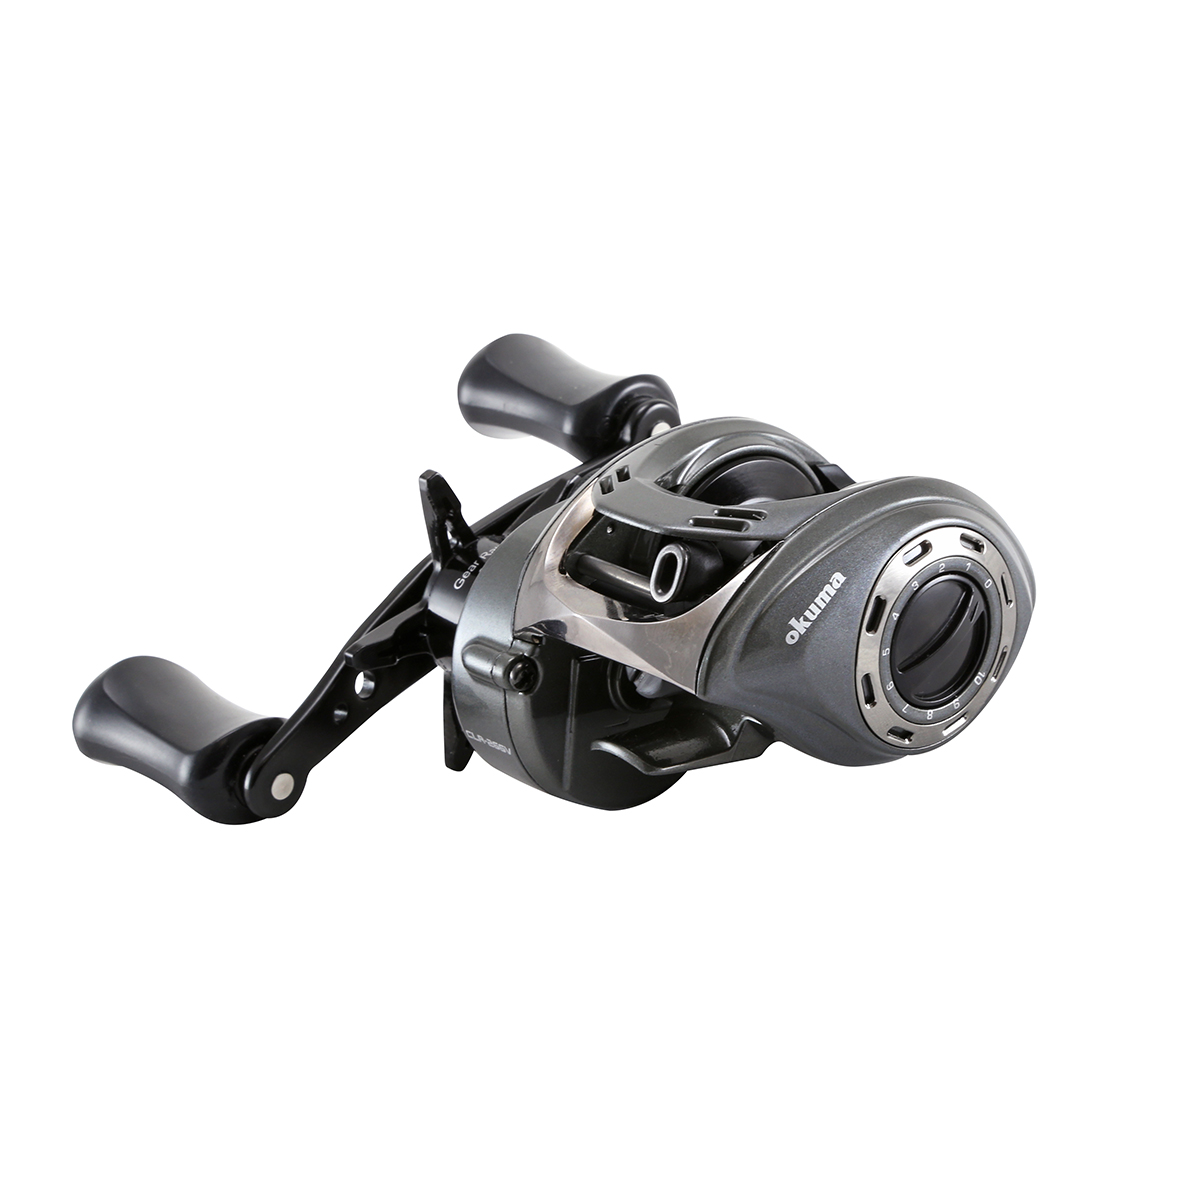 Cerros Low Profile Baitcast Reel - Okuma Cerros Low Profile Baitcast Reel-Alumilite frame construction-9BB + 1RB bearings drive system-Quick-Set anti-reverse roller bearing